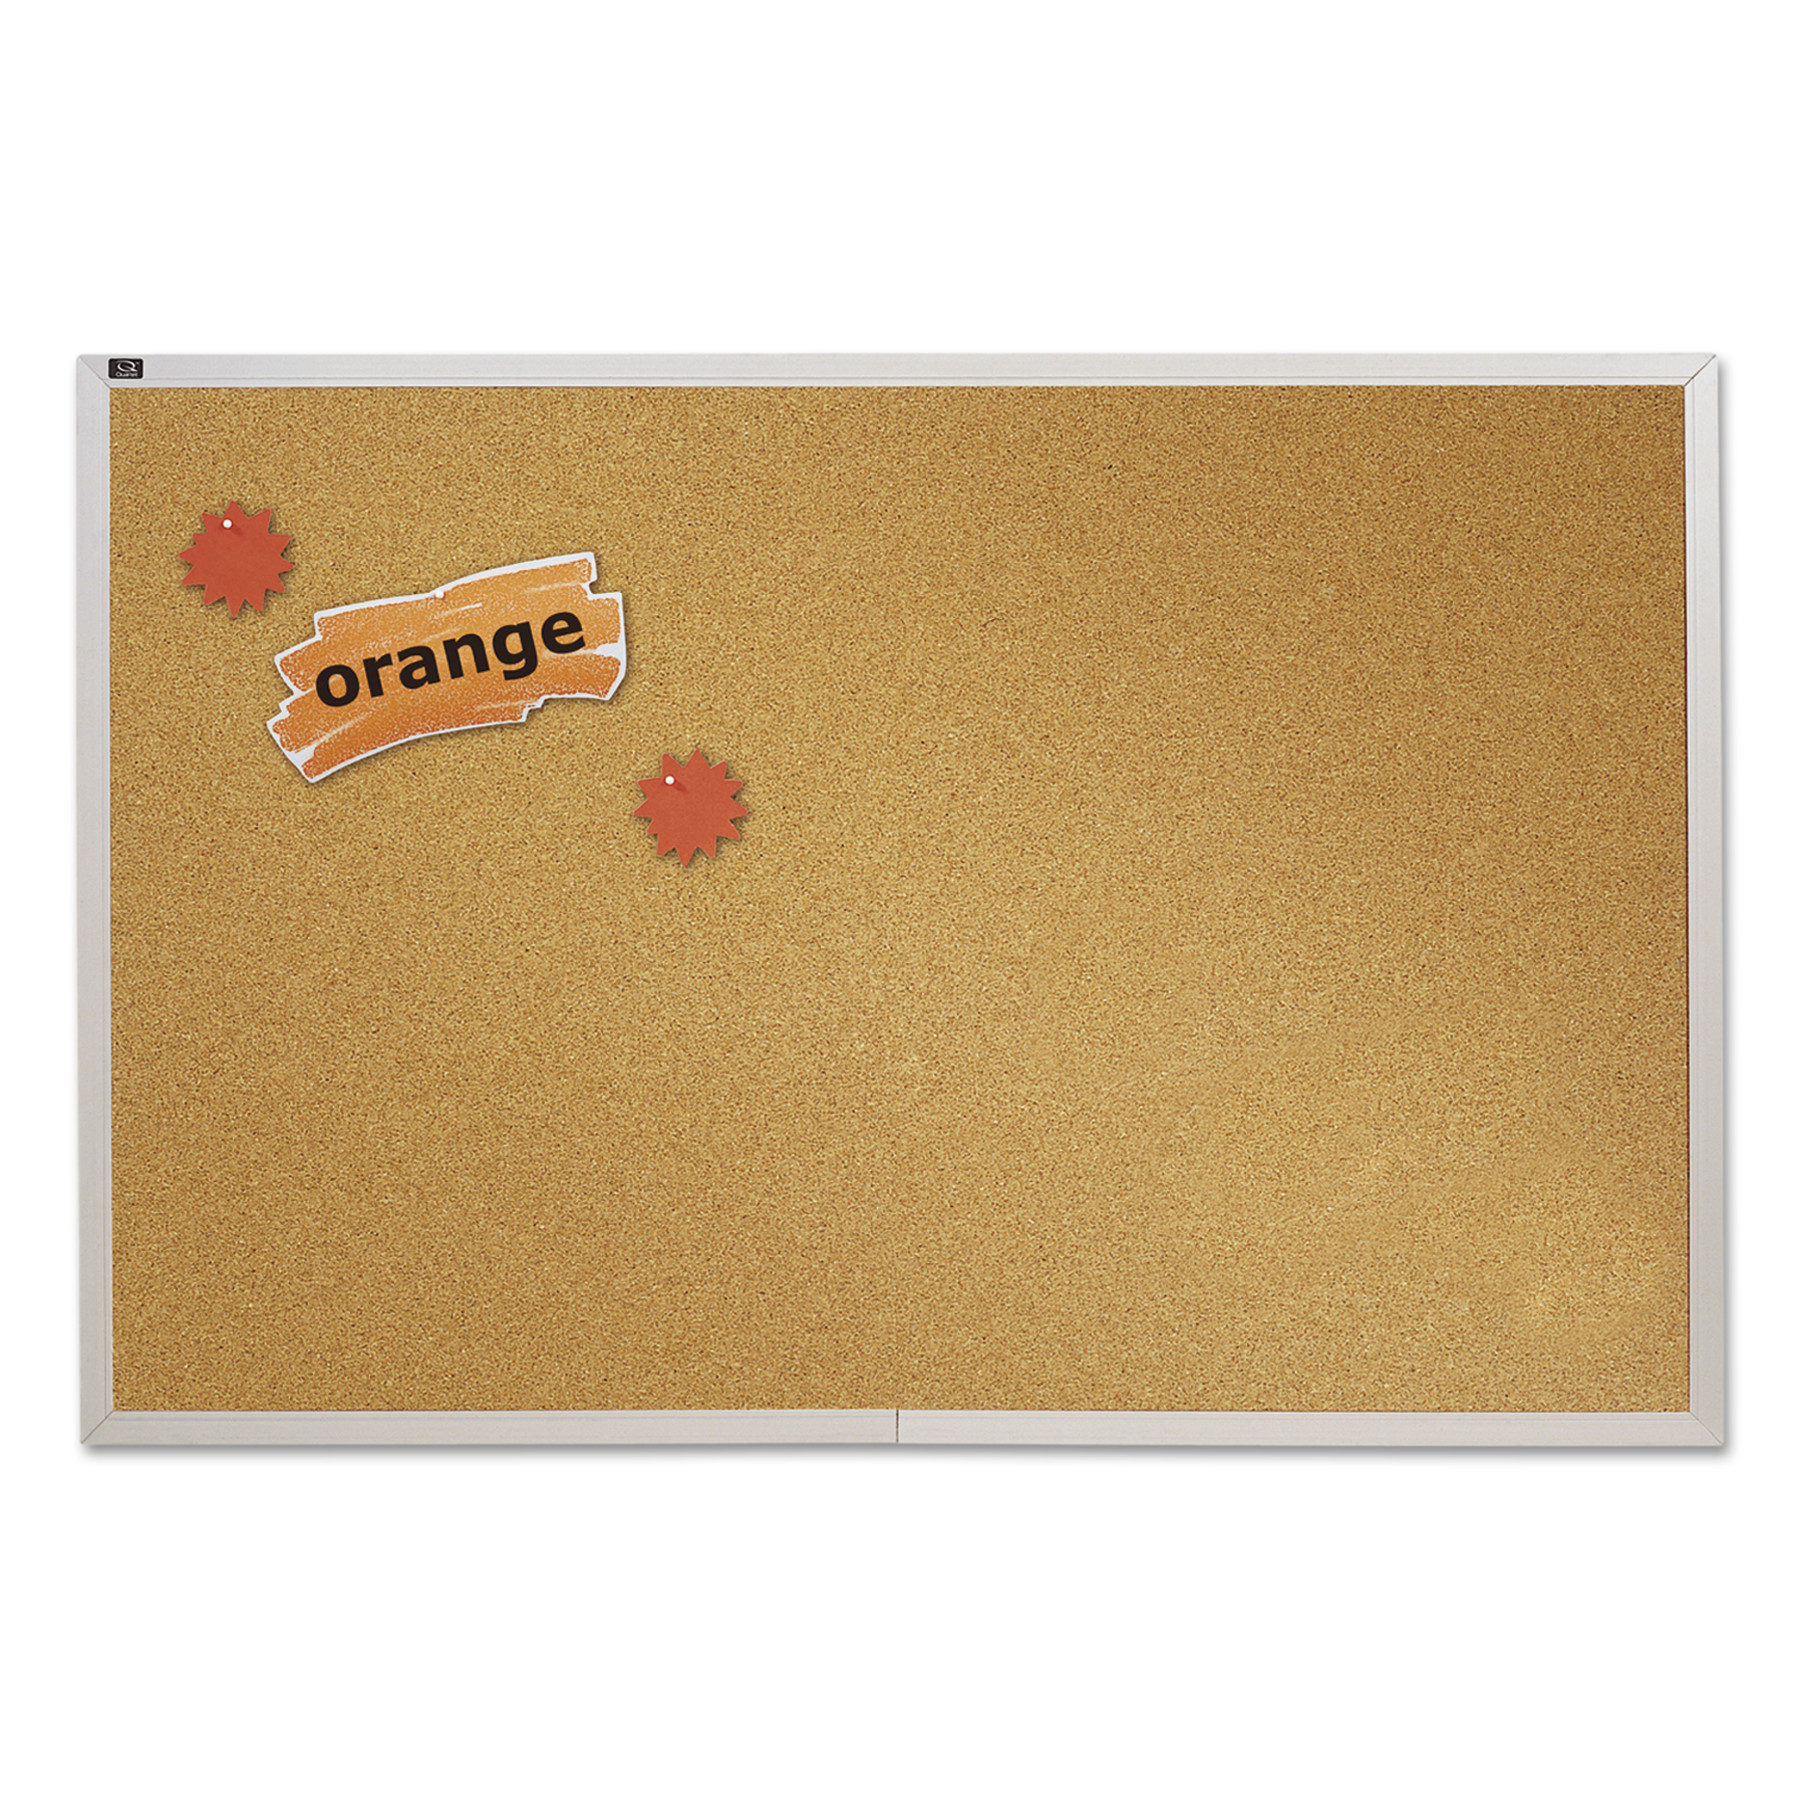 Quartet Natural Cork Bulletin Board, 8' x 4', Anodized Aluminum Frame